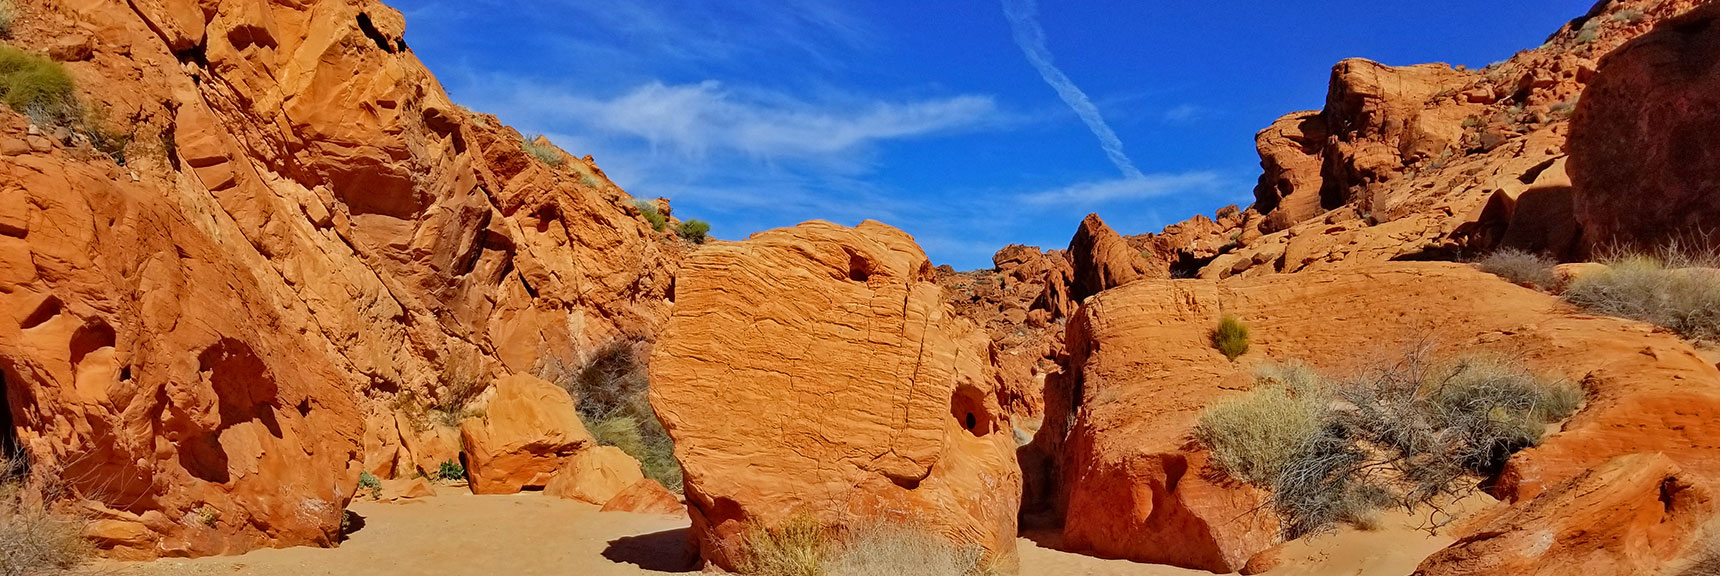 Fallen Boulder from a Cliffon Natural Arches Trail, Valley of Fire State Park, Nevada